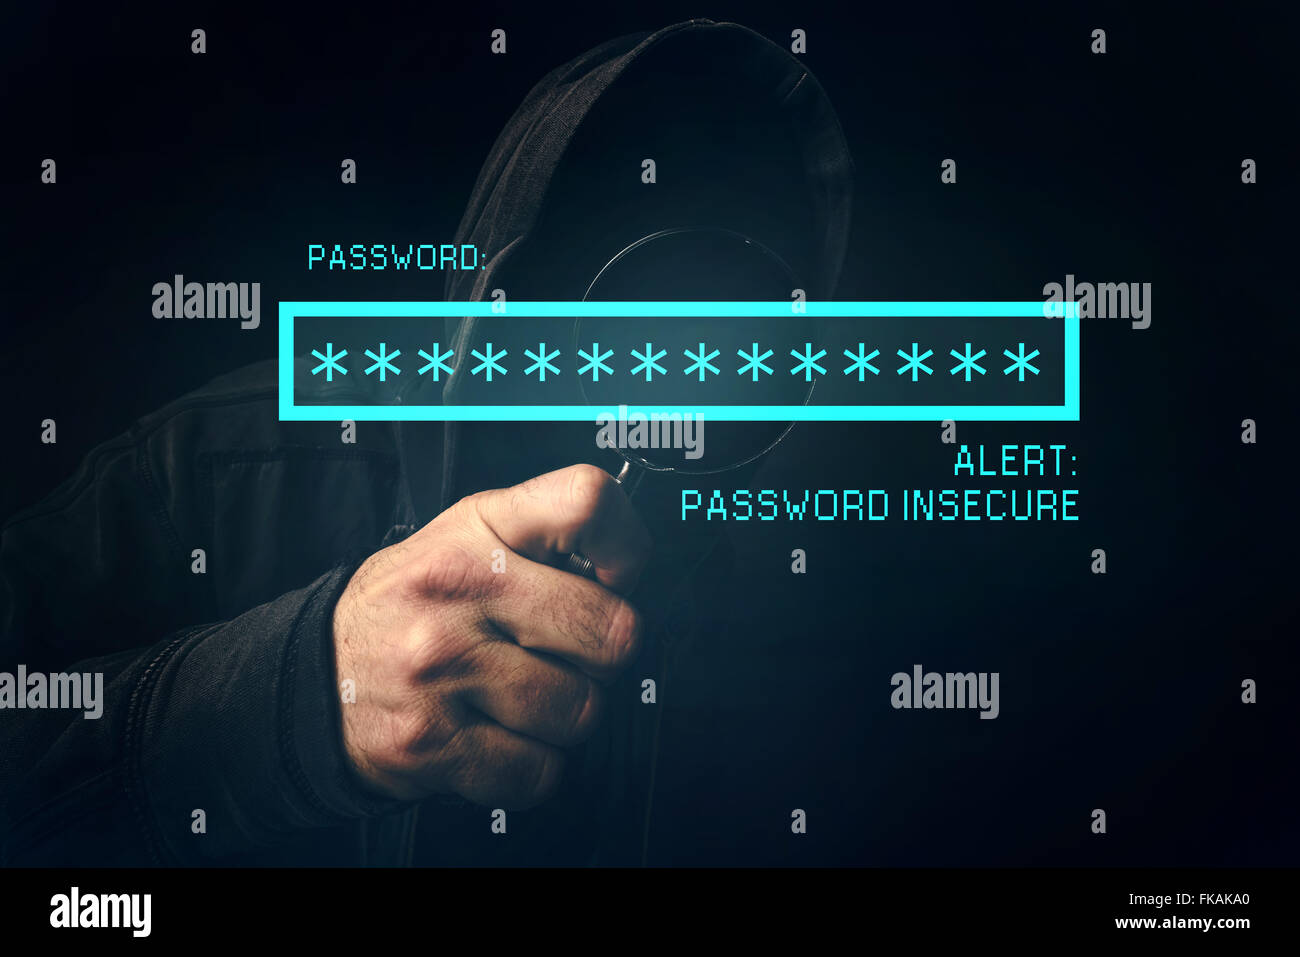 Password insecure alert, unrecognizable computer hacker stealing personal data, internet cyber crime concept. - Stock Image